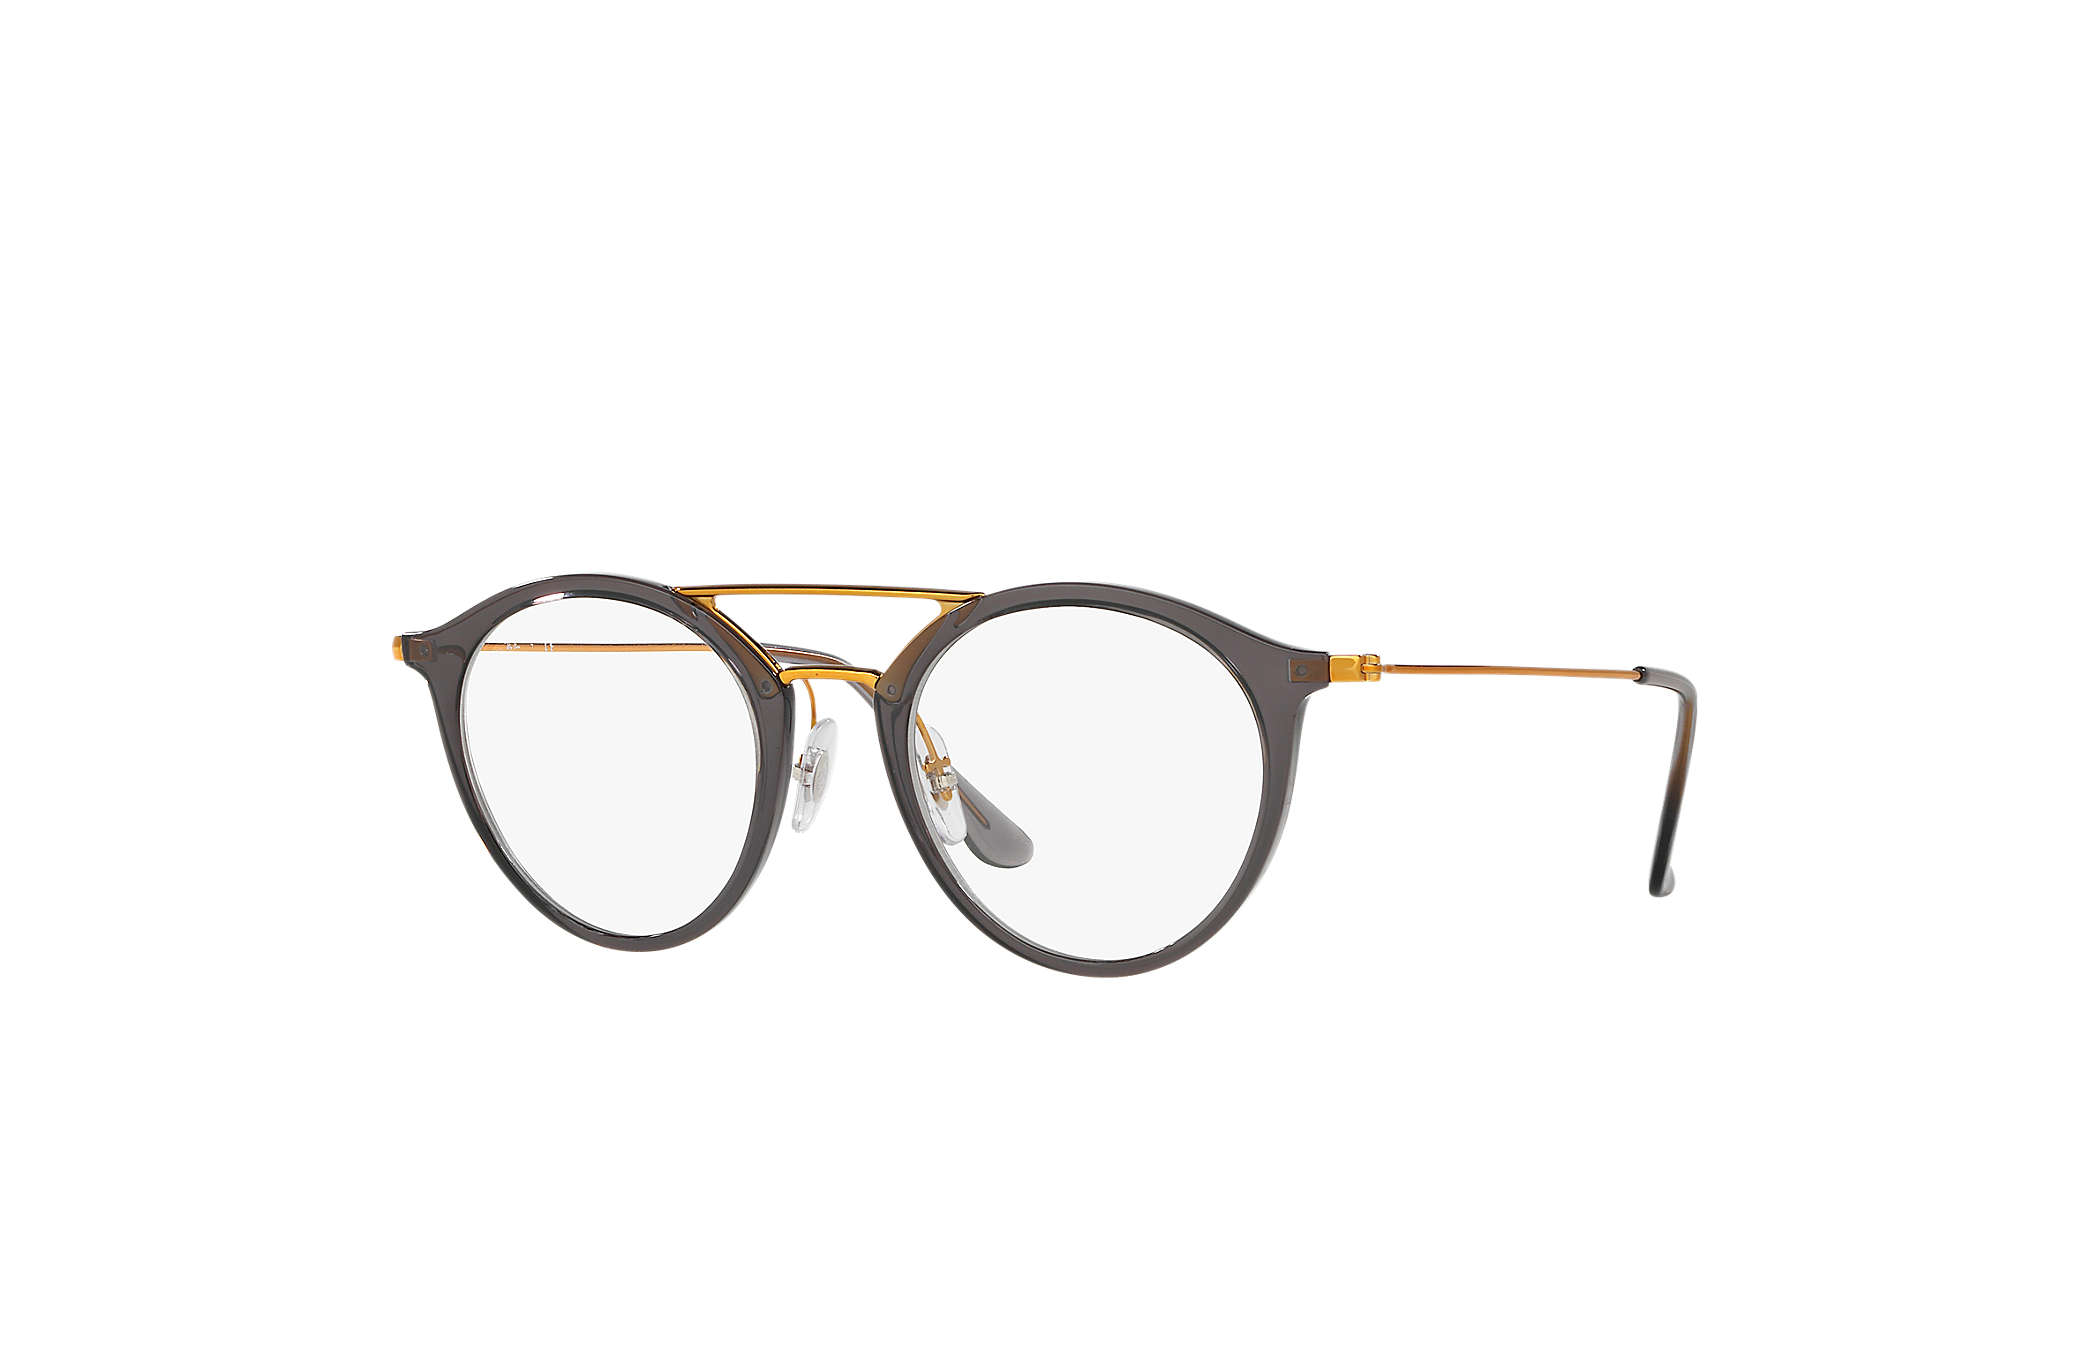 53007d27b9 Ray-Ban prescription glasses RB7097 Grey - Injected - 0RX7097563347 ...